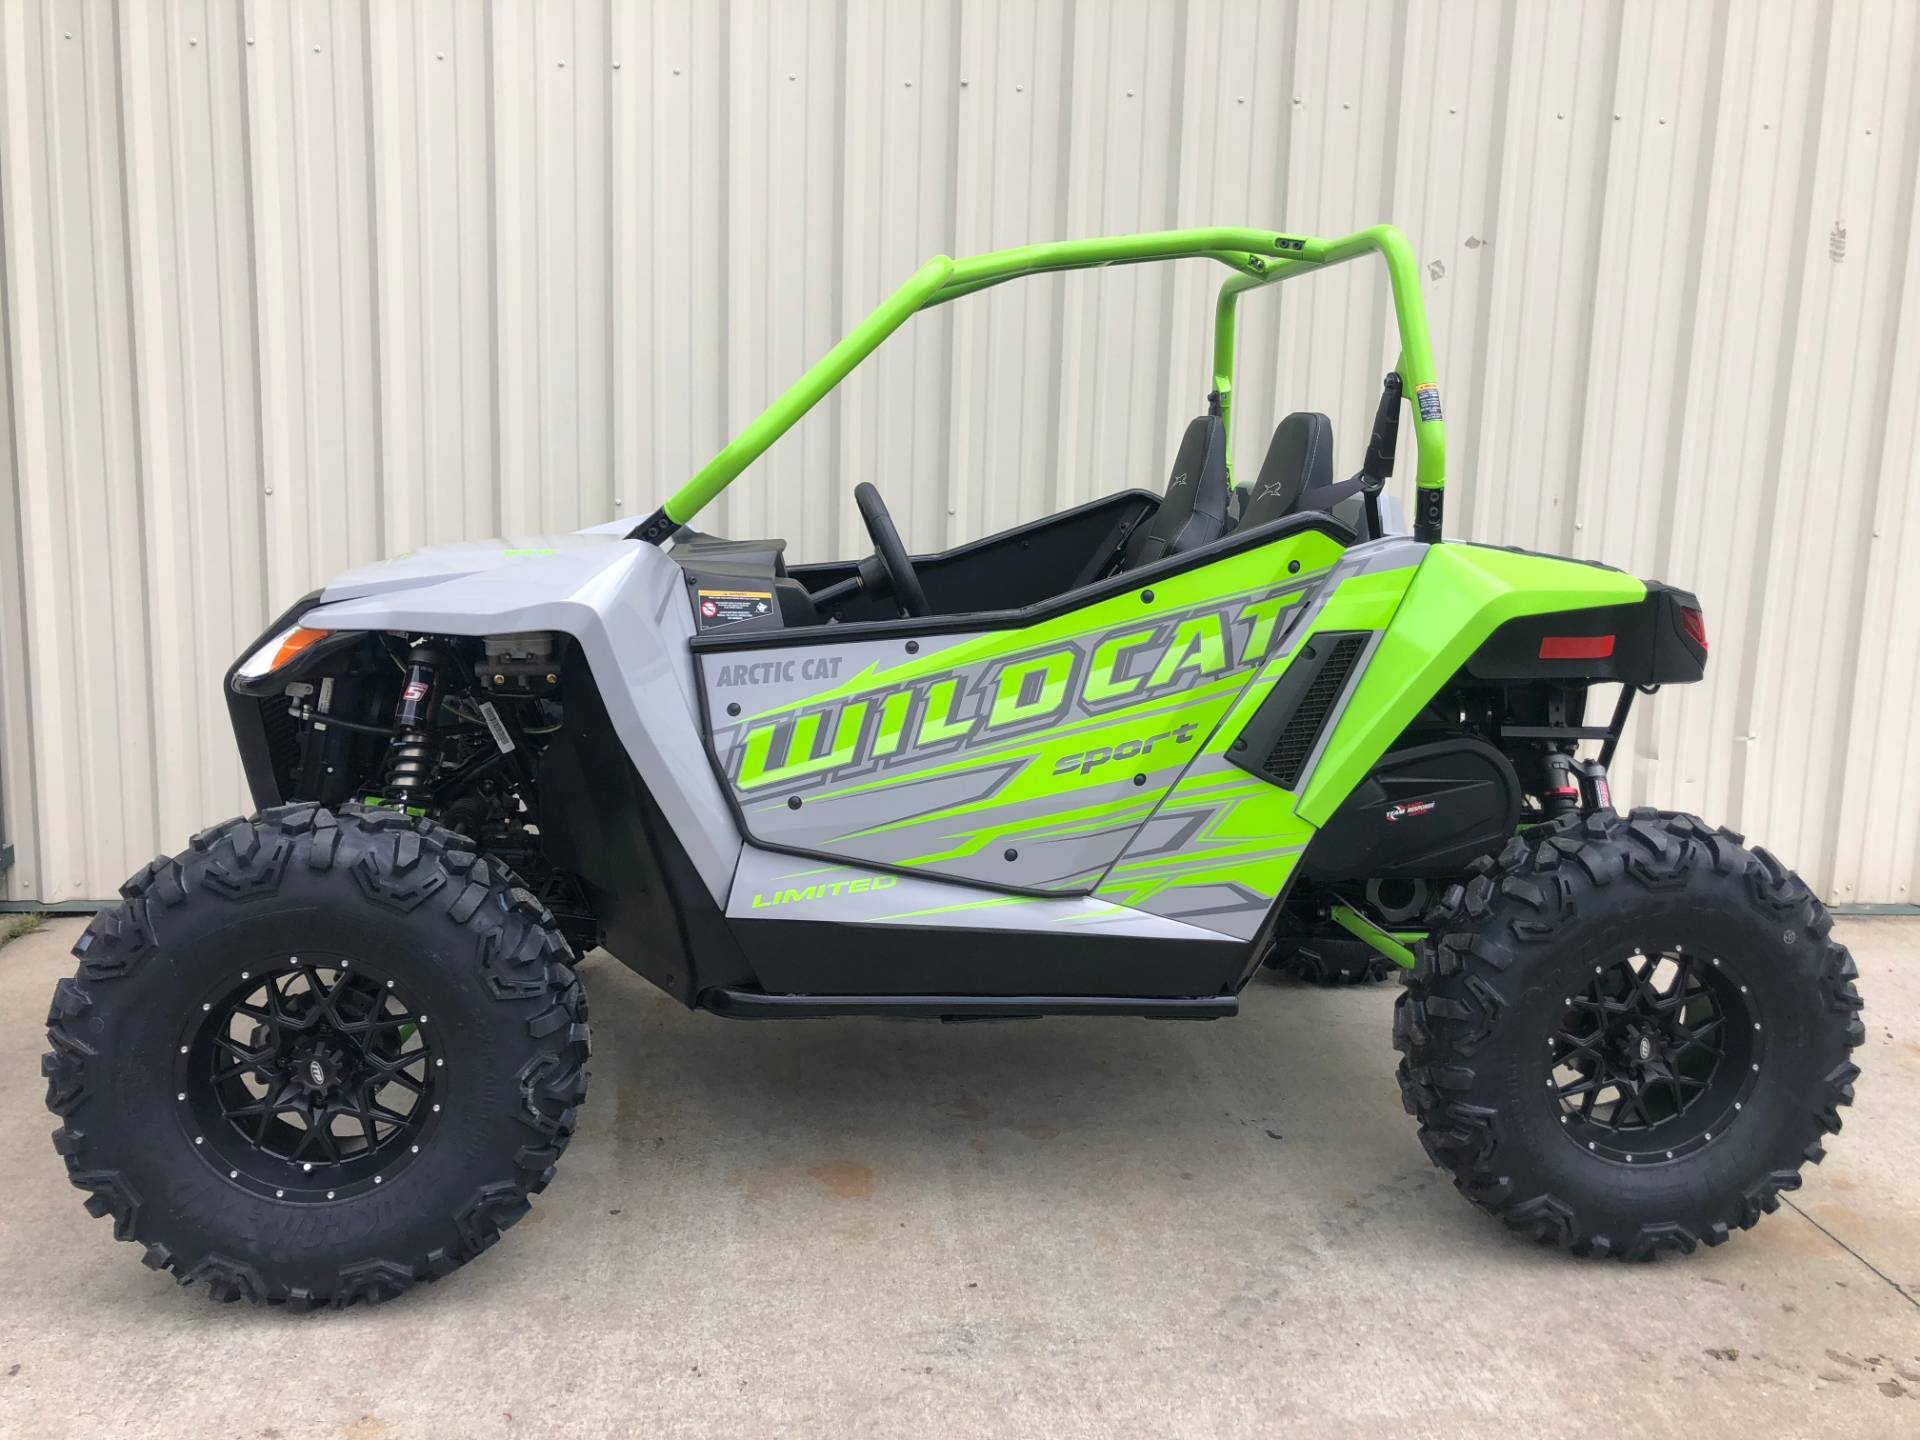 2017 Arctic Cat WILDCAT SPORT in Tifton, Georgia